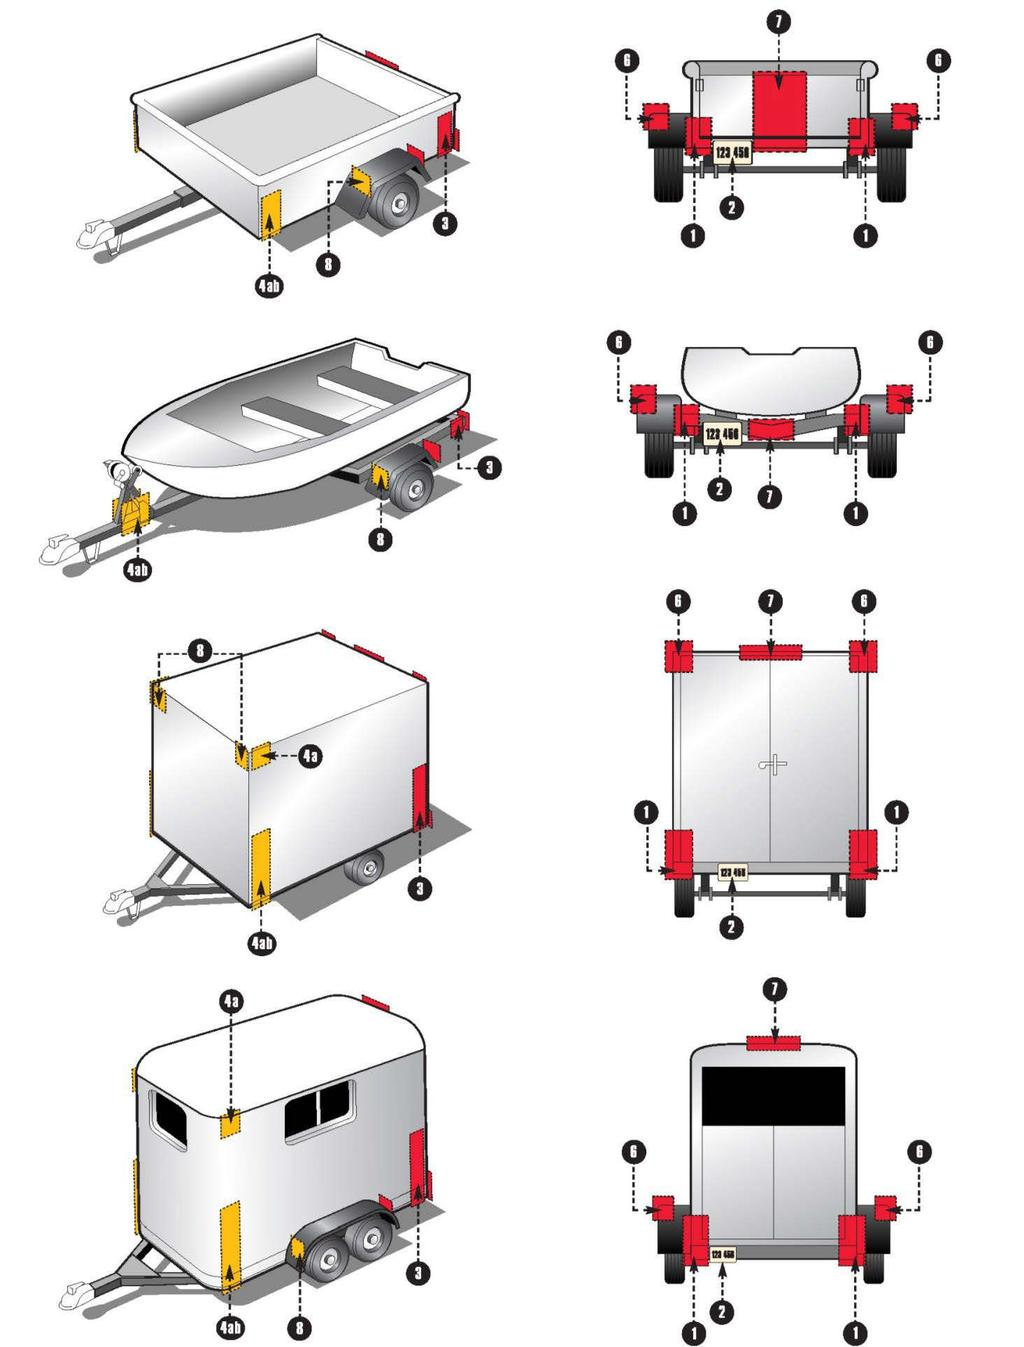 Commercial Vehicle Inspection Manual Pdf C3 Fuse Dead Battery Boxster Section 6 Lamps All Procedures Are Visual Unless Additional